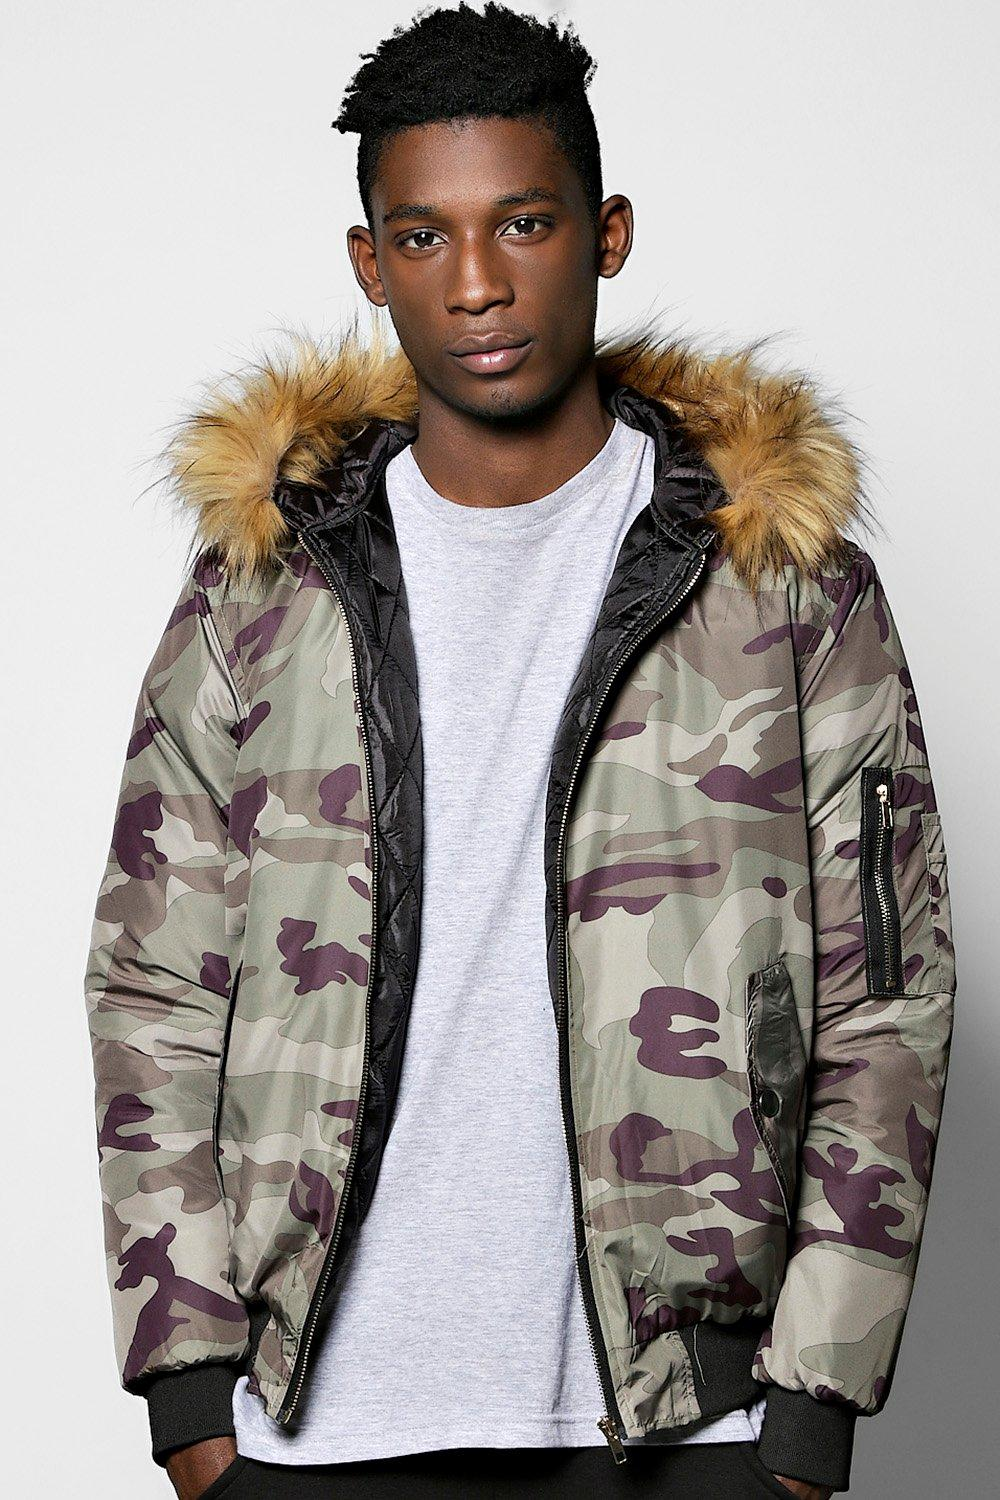 Camo Print Parka Jacket With Faux Fur Hood at boohoo.com